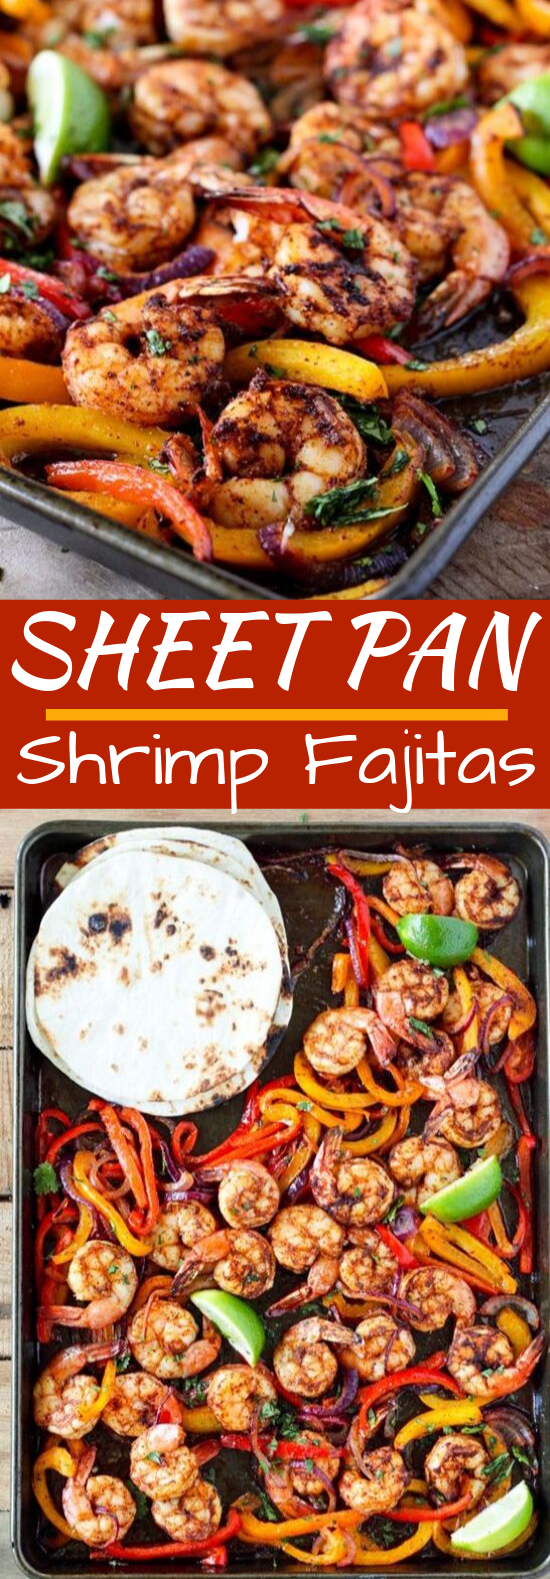 Sheet Pan Shrimp Fajitas #shrimp #dinner